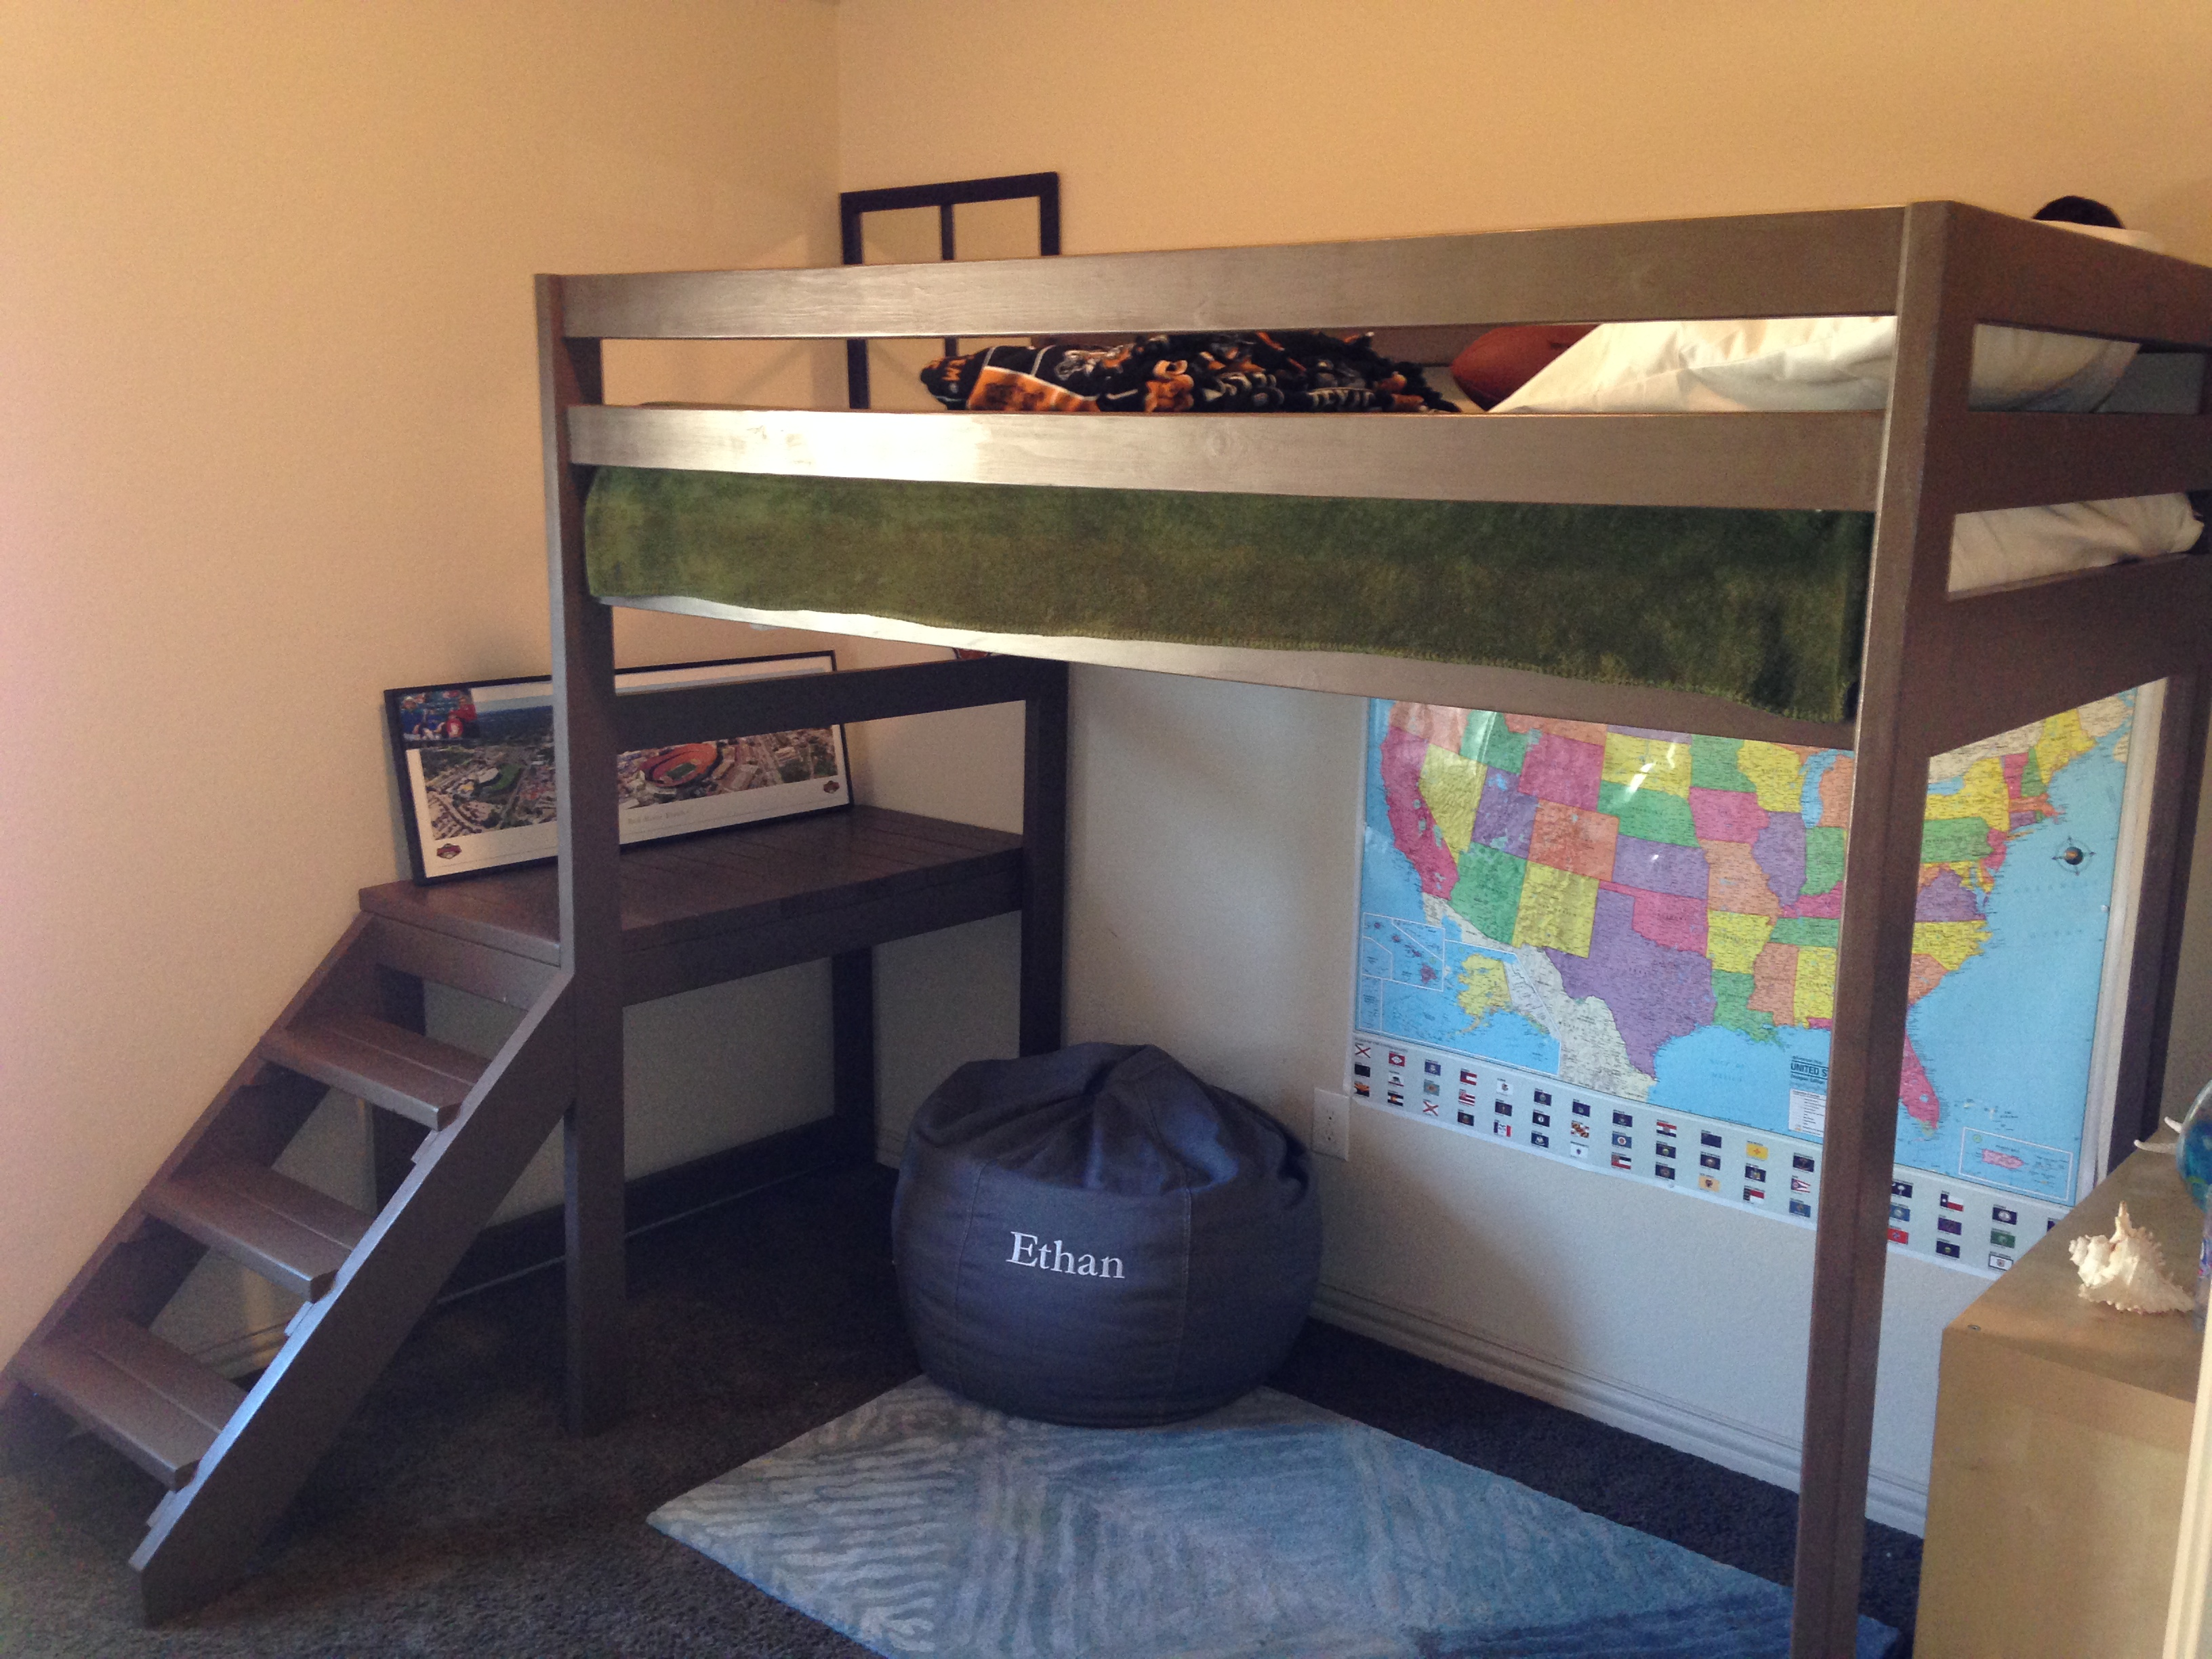 25 Diy Bunk Beds With Plans: Camp Loft Bed (modified Height) - DIY Projects